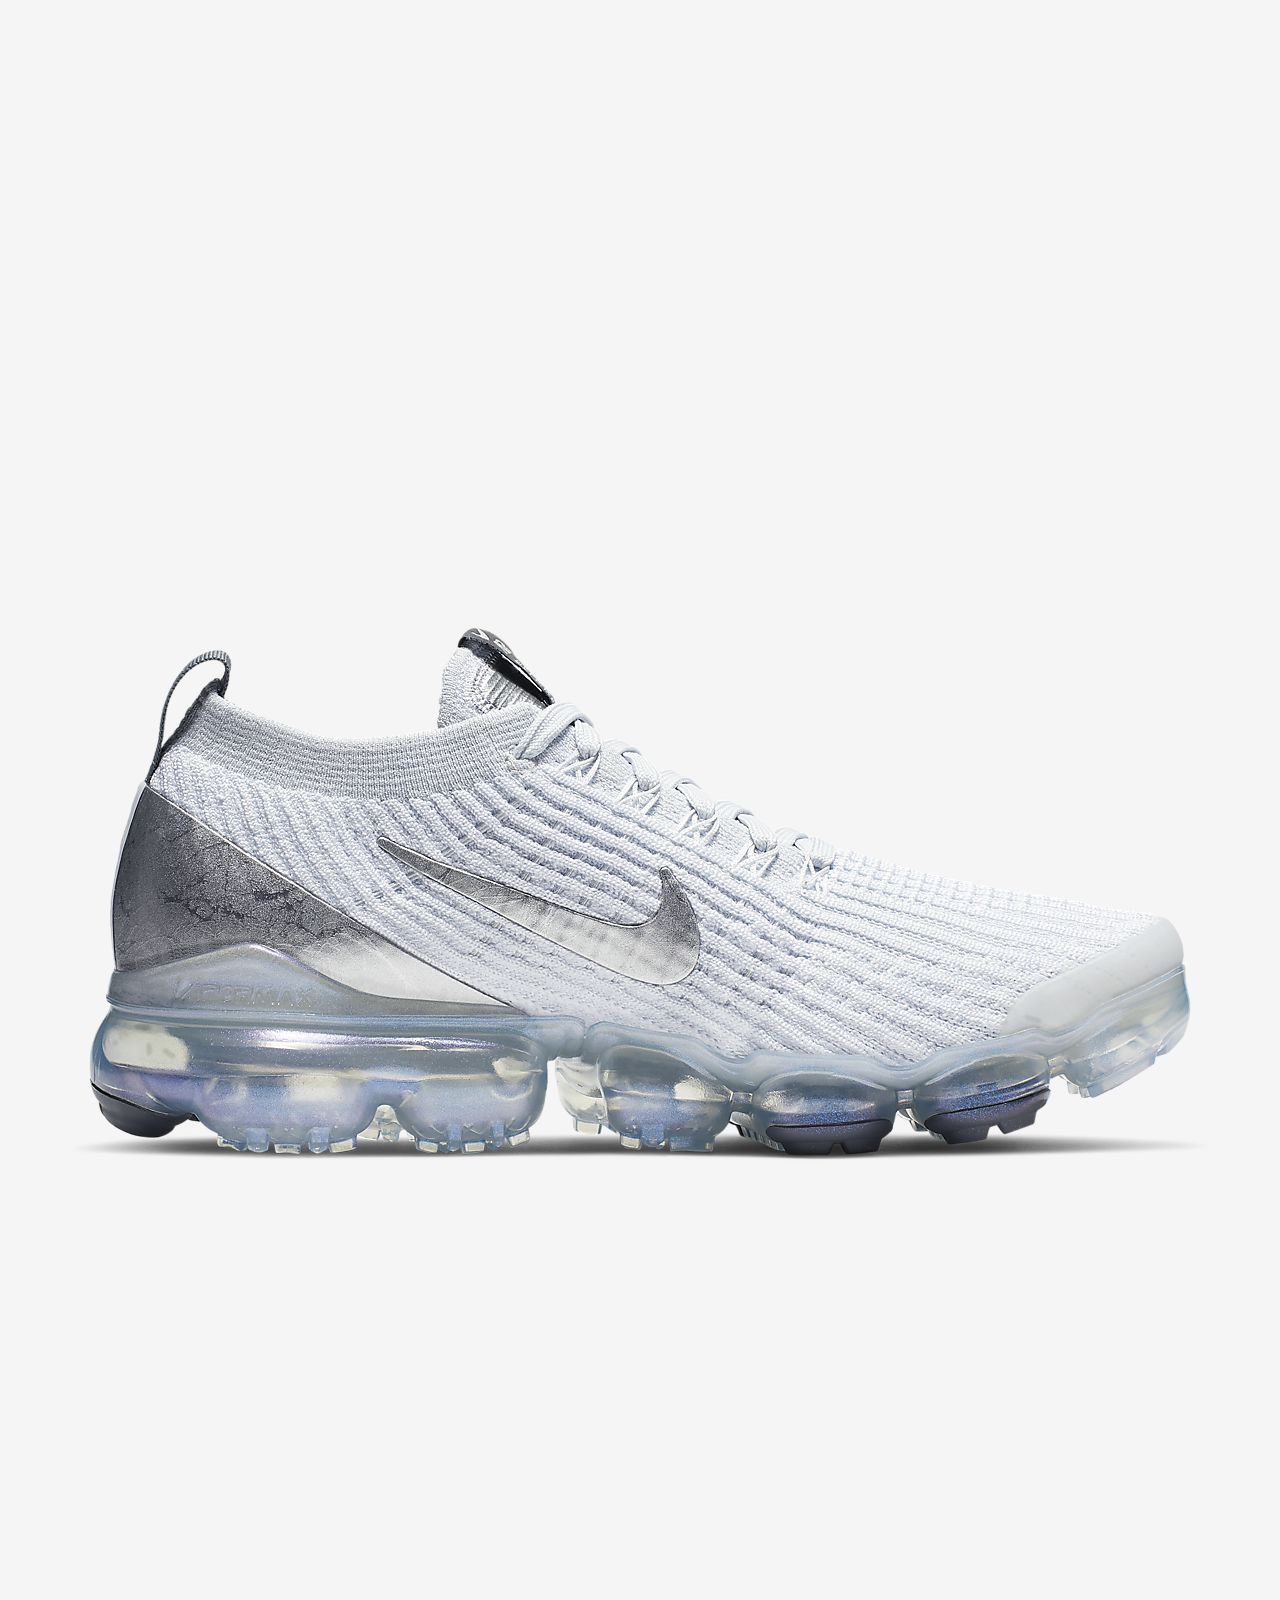 innovative design 9a409 be3e3 ... Nike Air VaporMax Flyknit 3 Women s Shoe